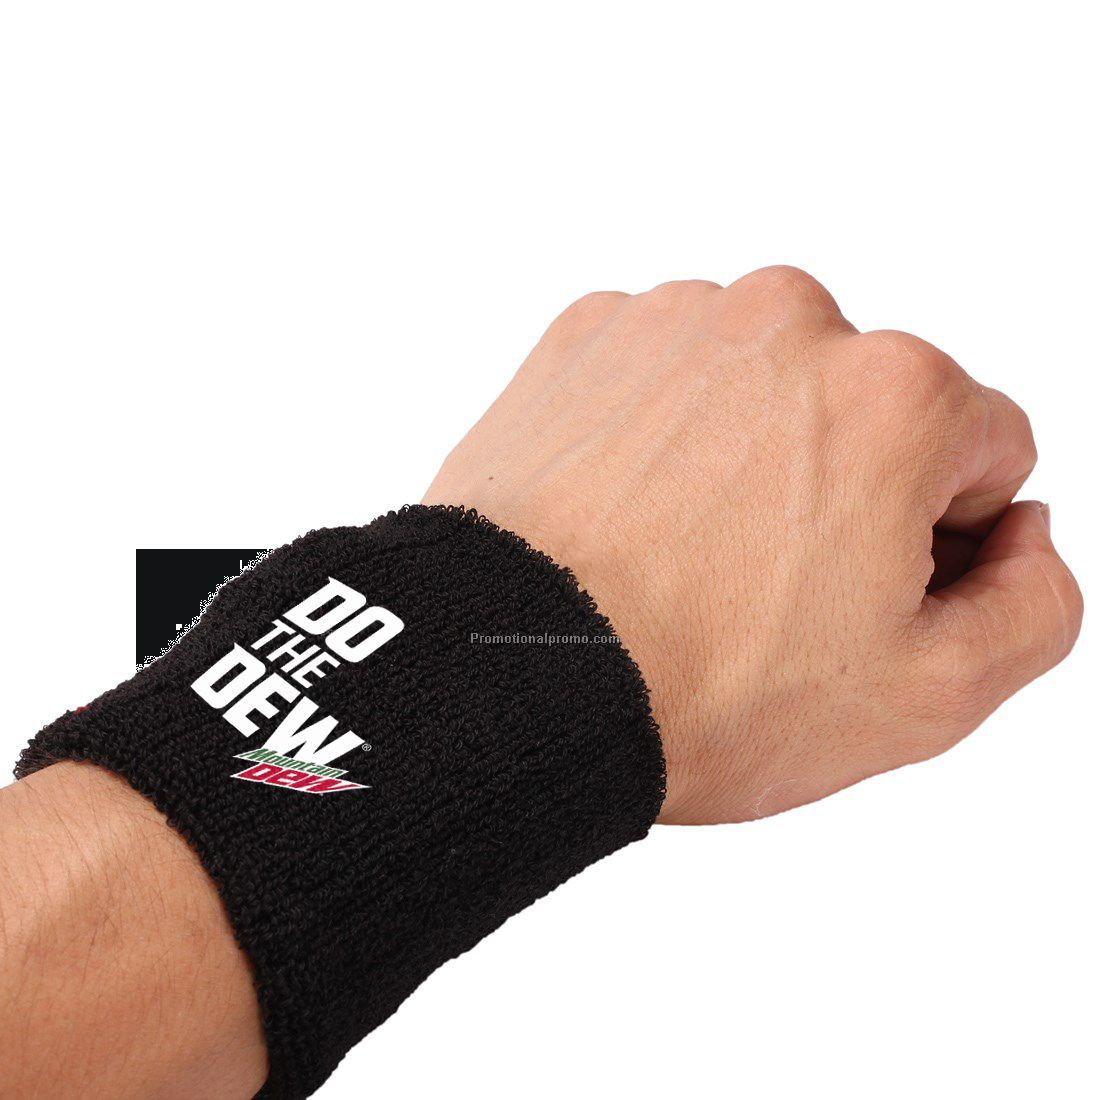 Promotional Cotton sweatband with embroidered logo